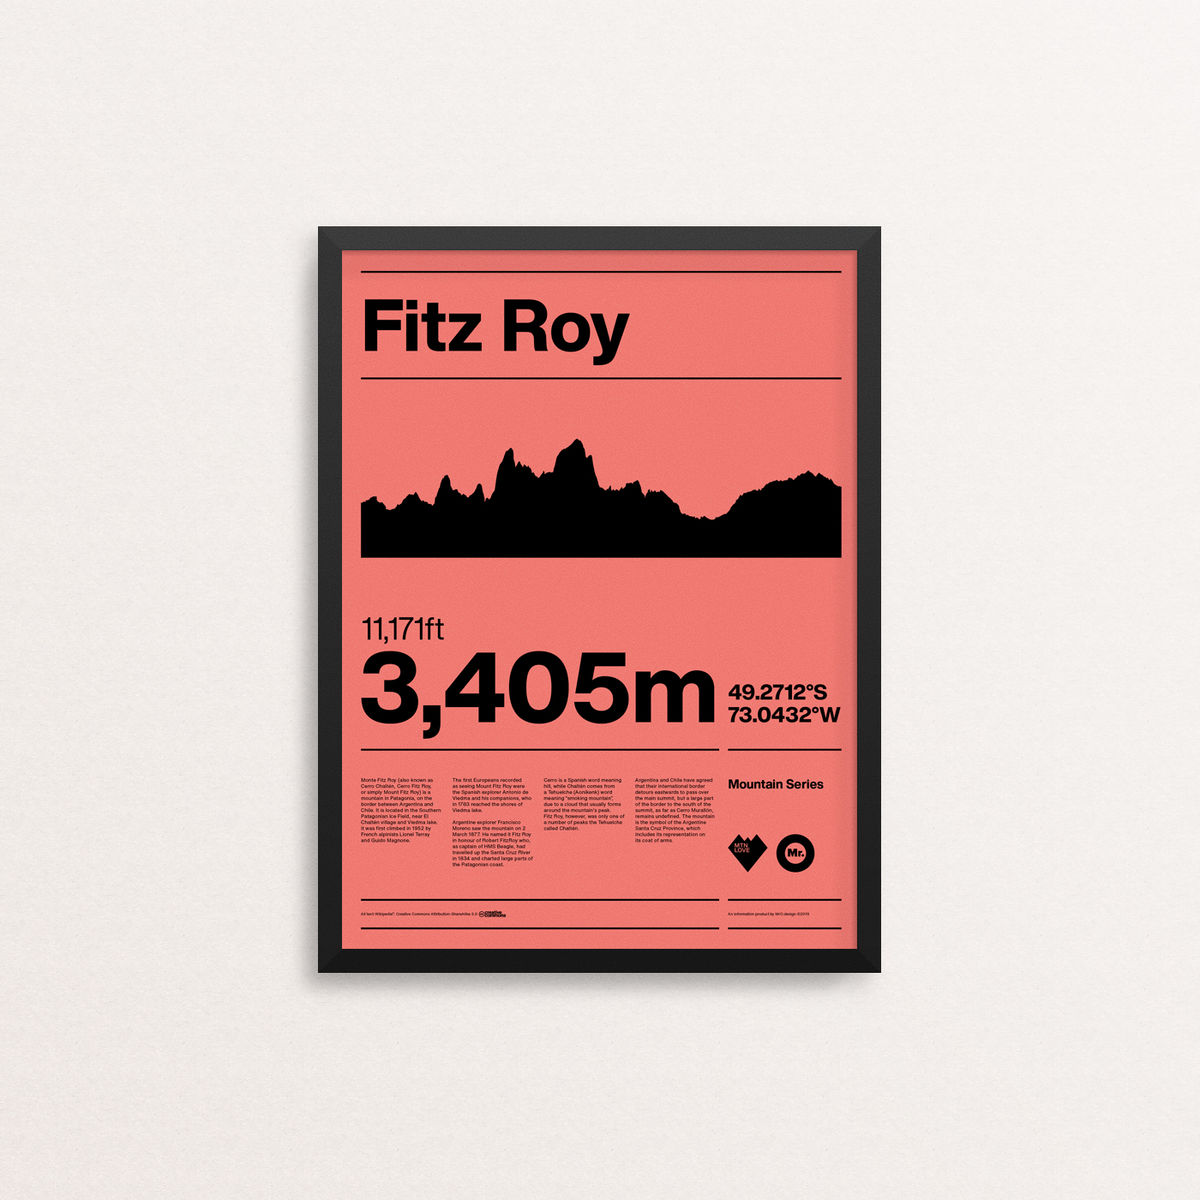 MTN Love - Fitz Roy - product image